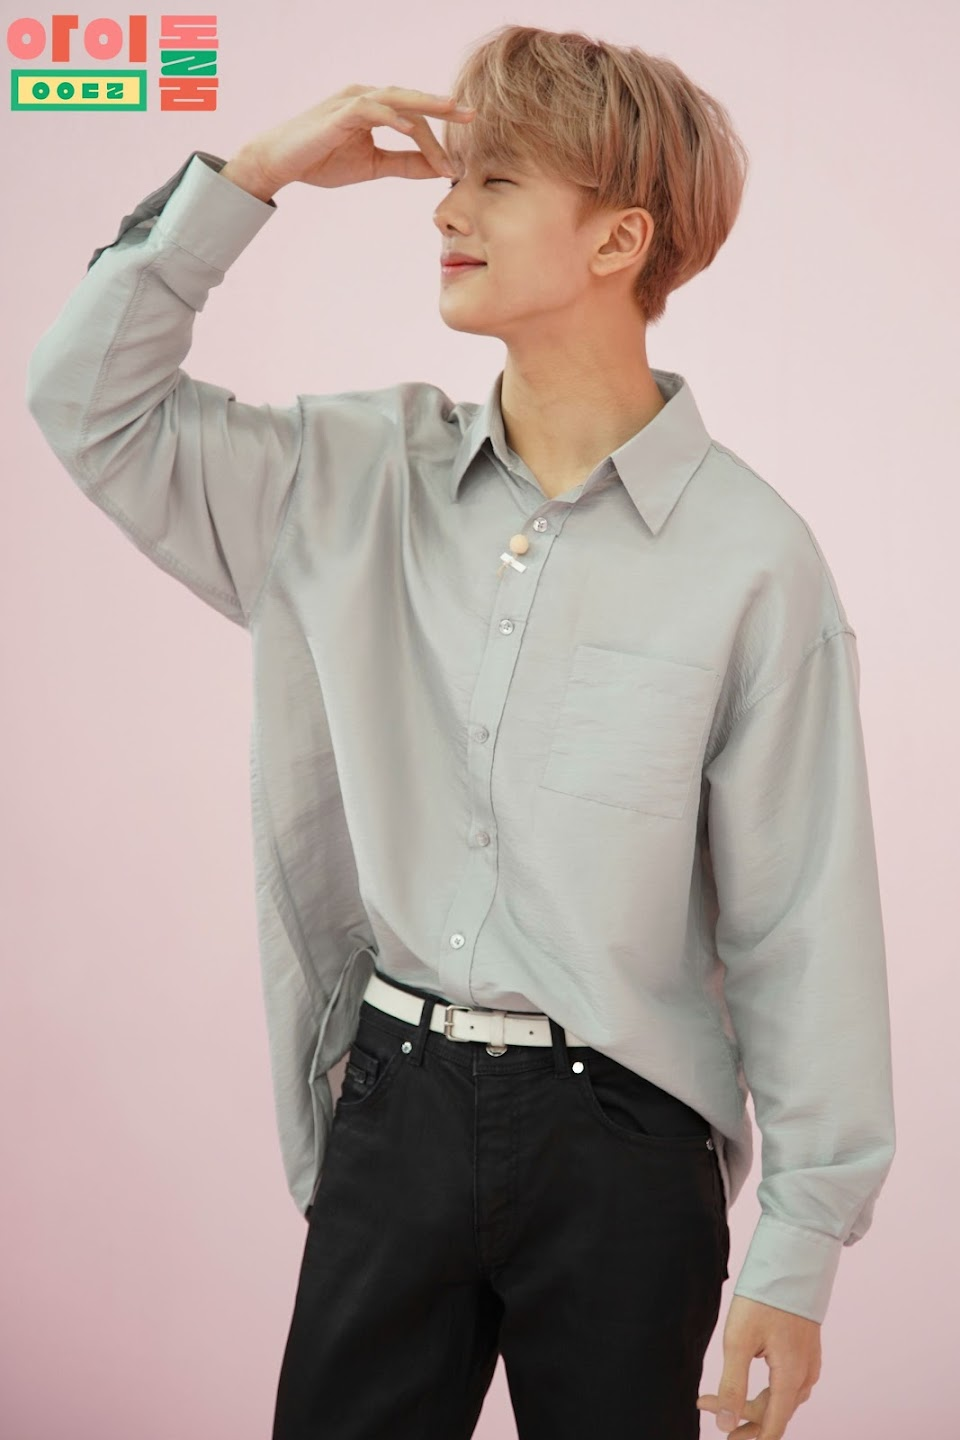 nct dream jisung